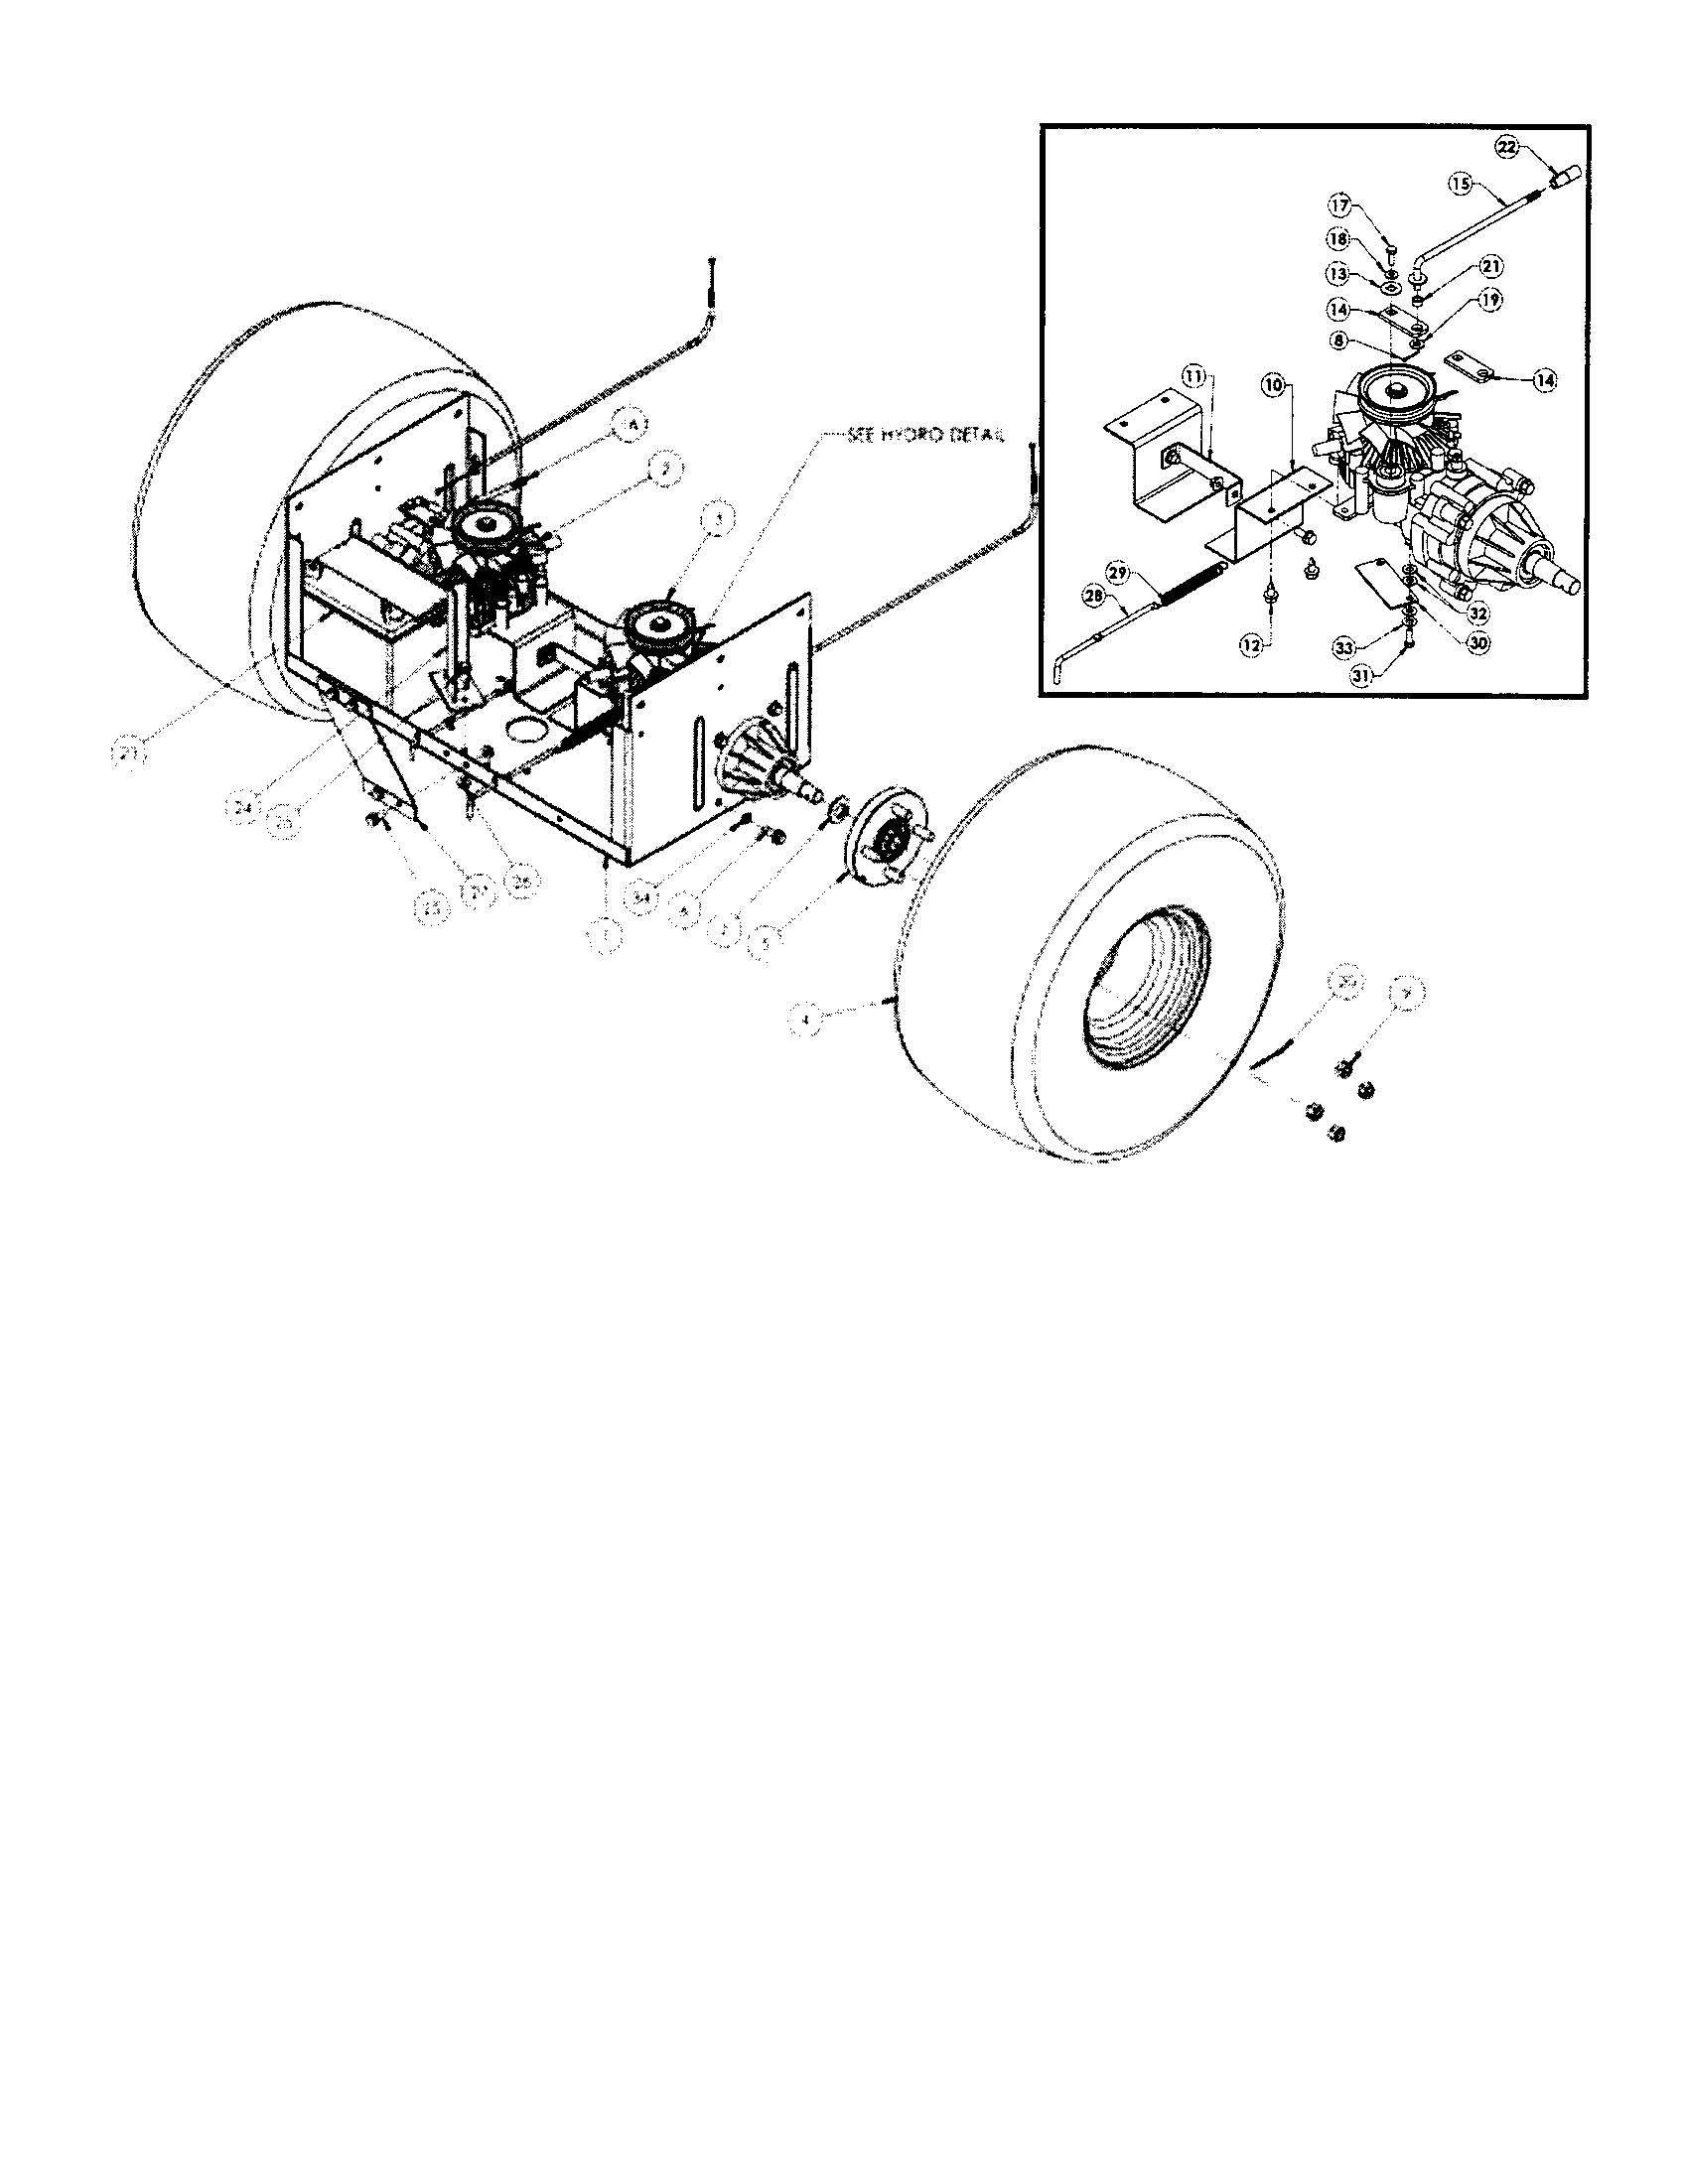 Swisher 60 Mower Parts. Wiring. Wiring Diagram Images